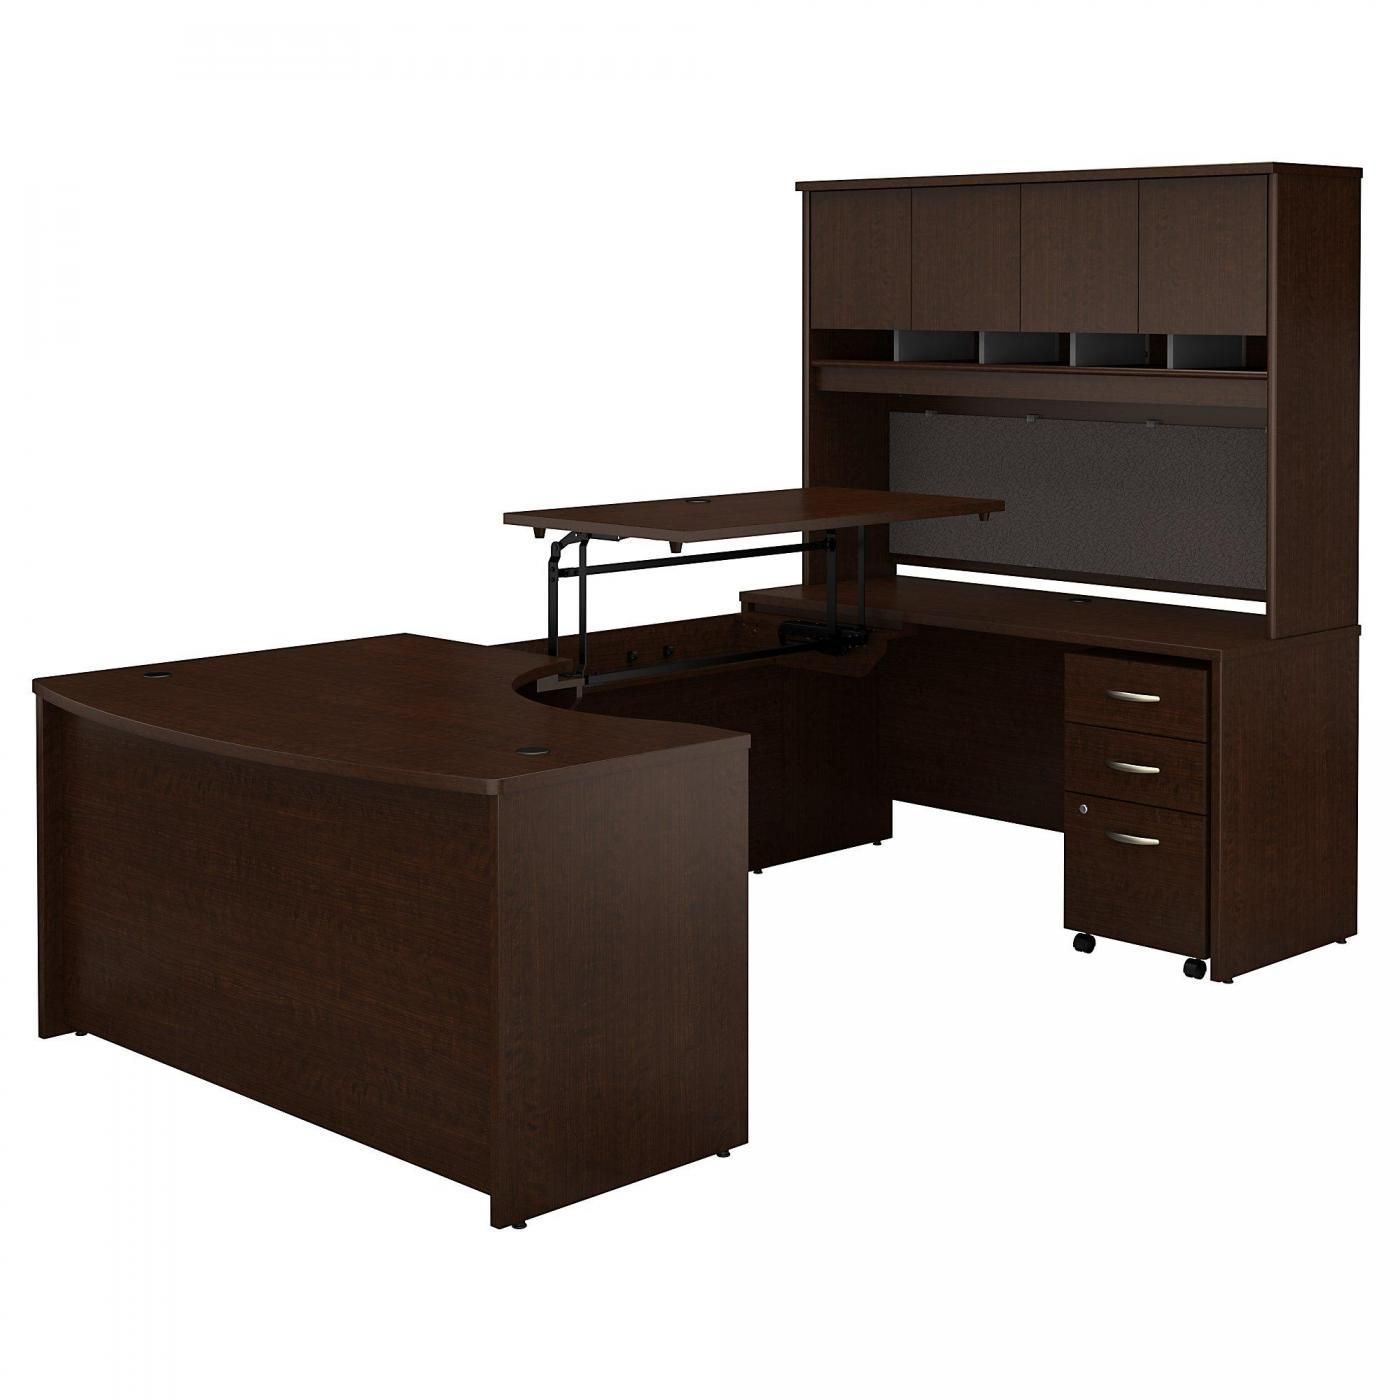 <font color=#c60><b>BUSH BUSINESS FURNITURE SERIES C 60W X 43D LEFT HAND 3 POSITION SIT TO STAND U SHAPED DESK WITH HUTCH AND MOBILE FILE CABINET. FREE SHIPPING. VIDEO:</font></b>